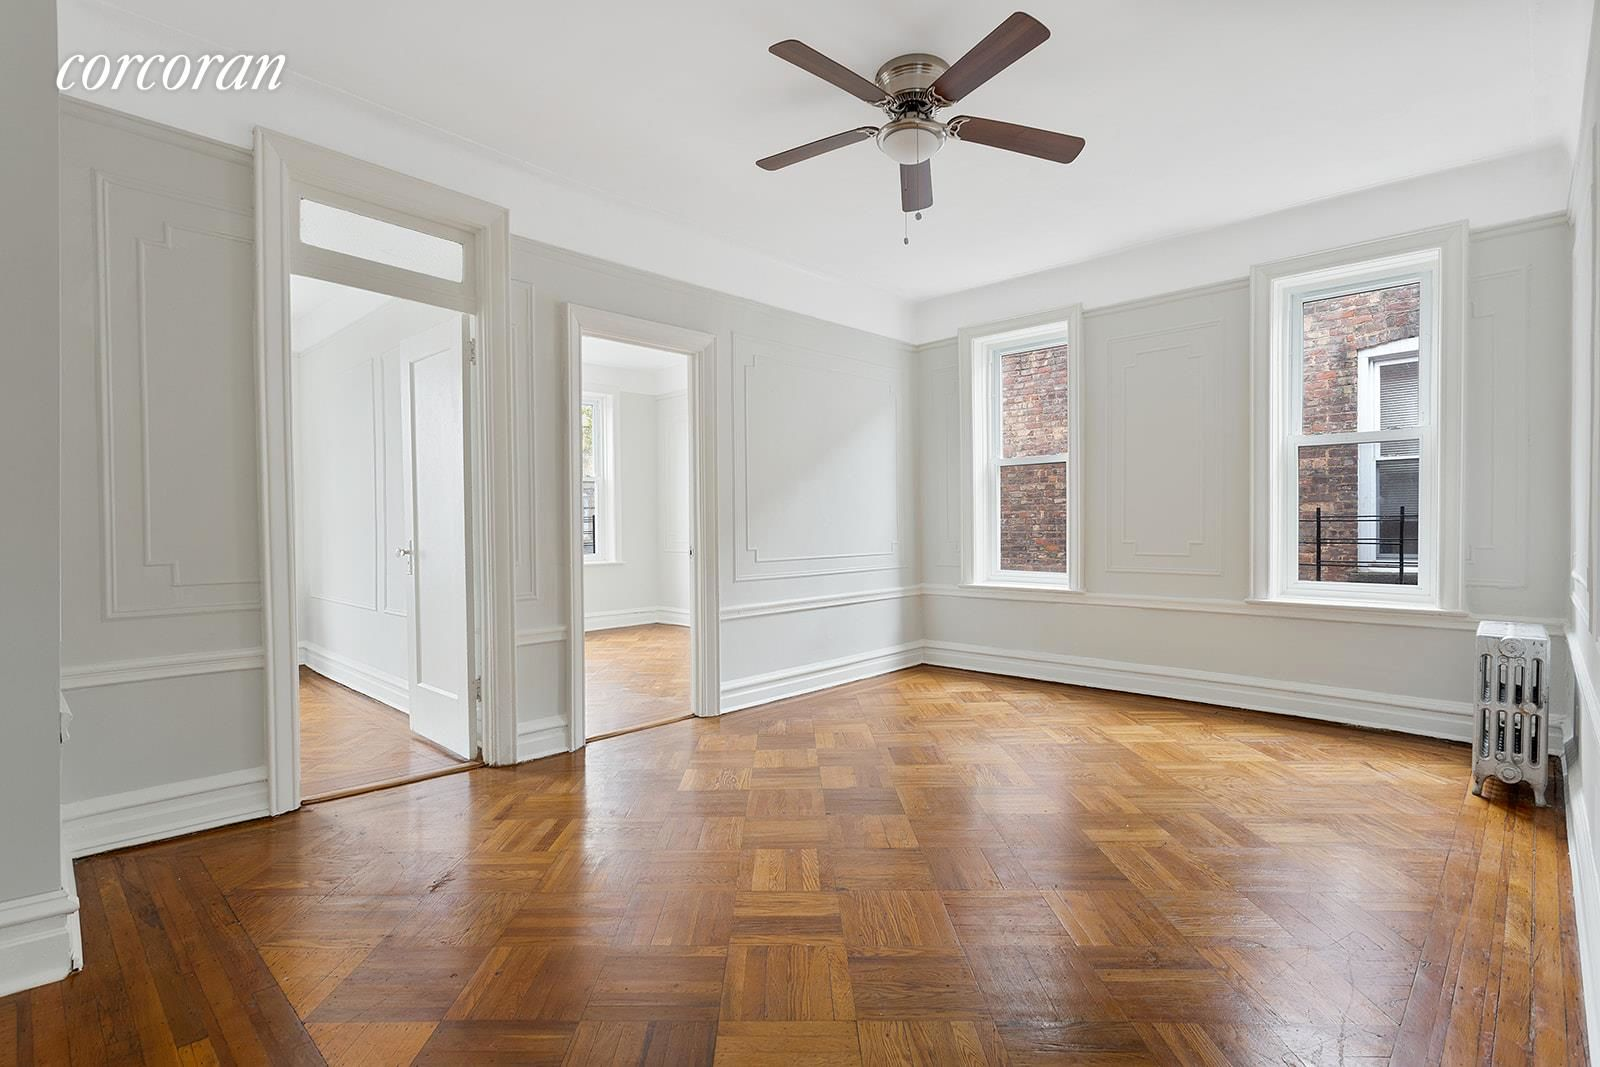 566 Osborn St Photo 0 - NYC-Real-Estate-681128